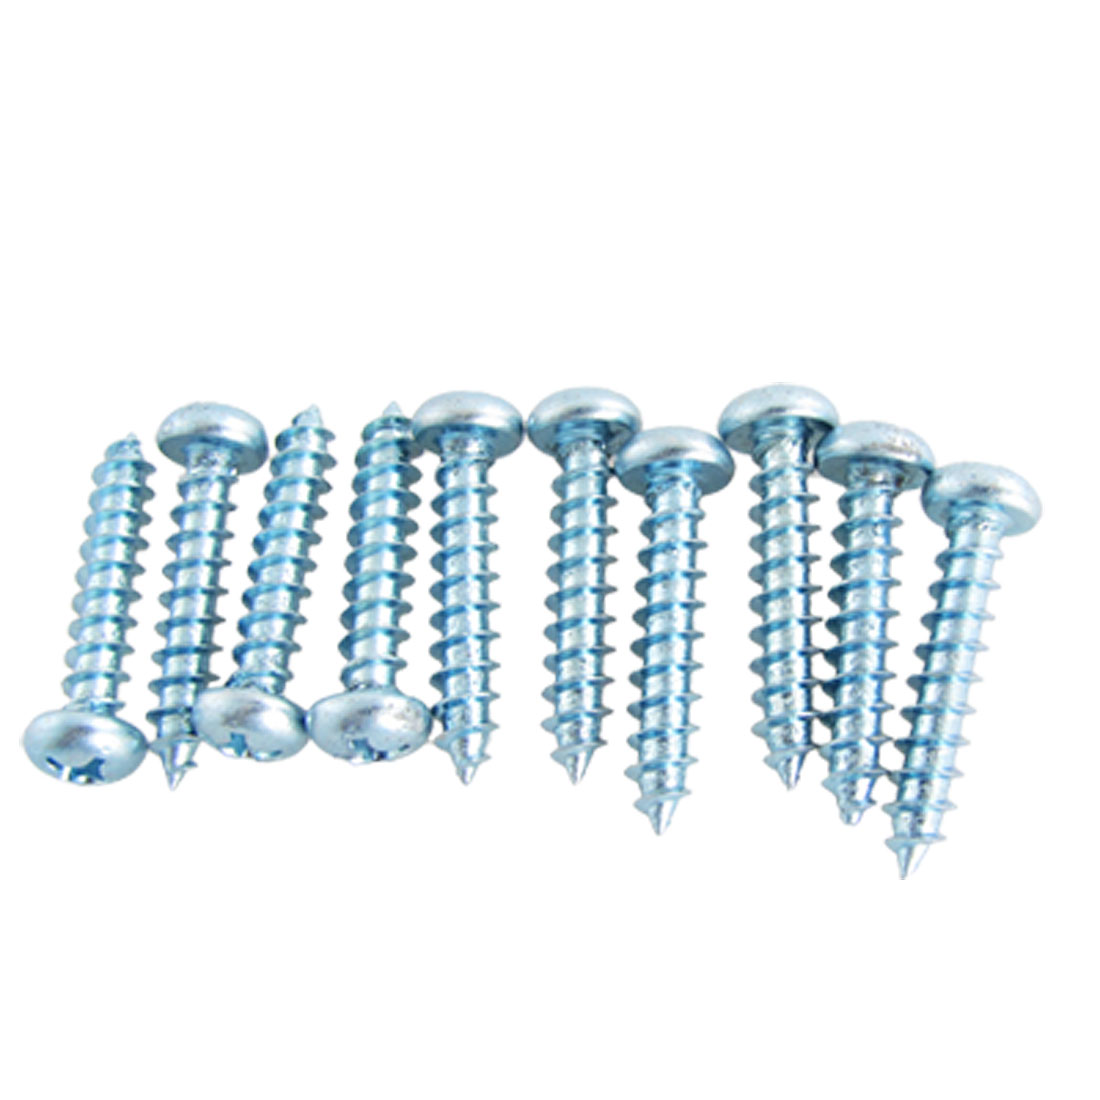 10 Quadrex Pan Head Self Tapping Screw 34mm Length